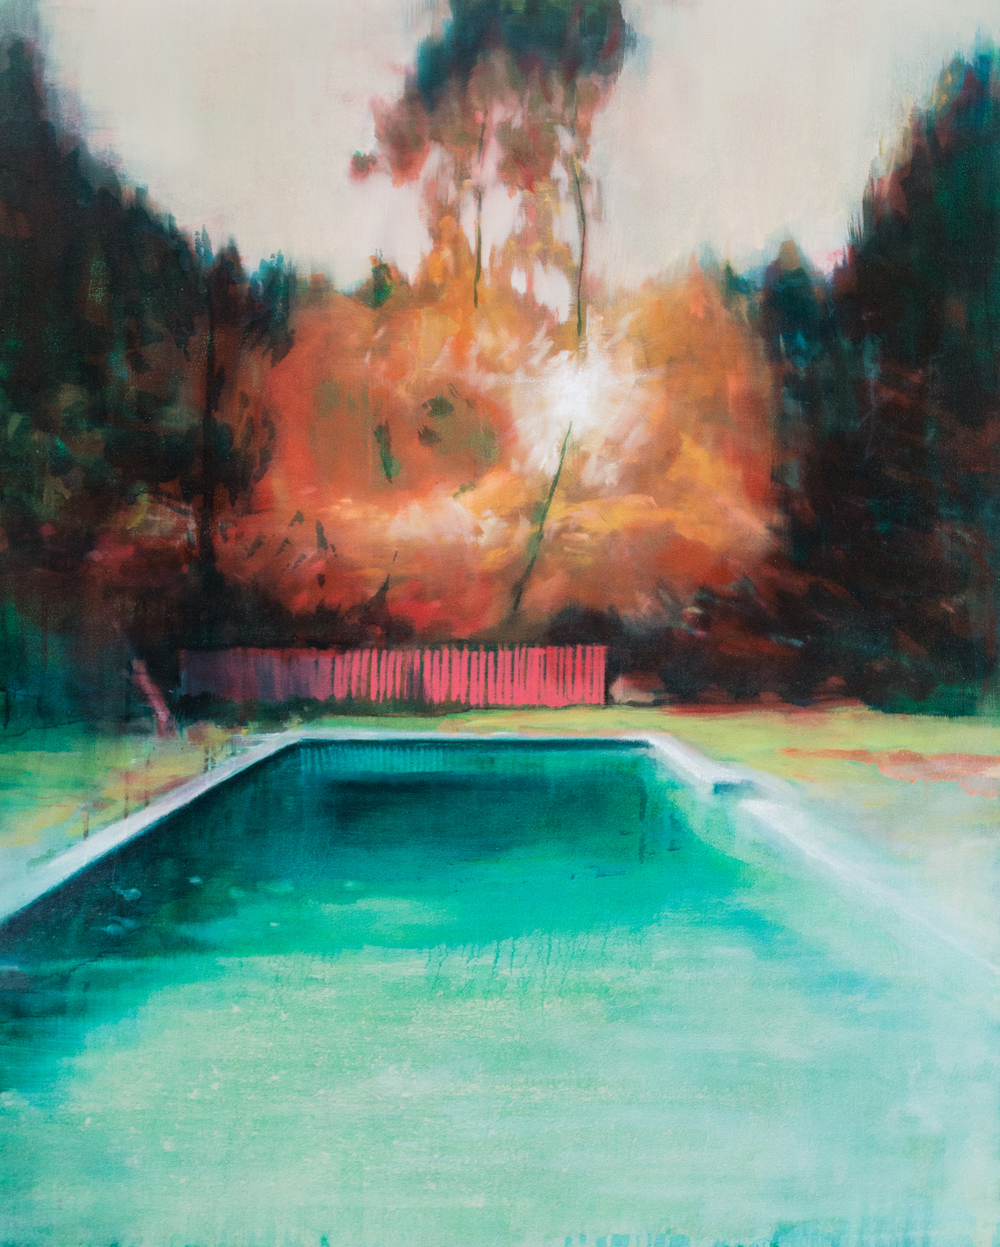 High Season, 100 x 80cm, Oil on Canvas, 2015/16